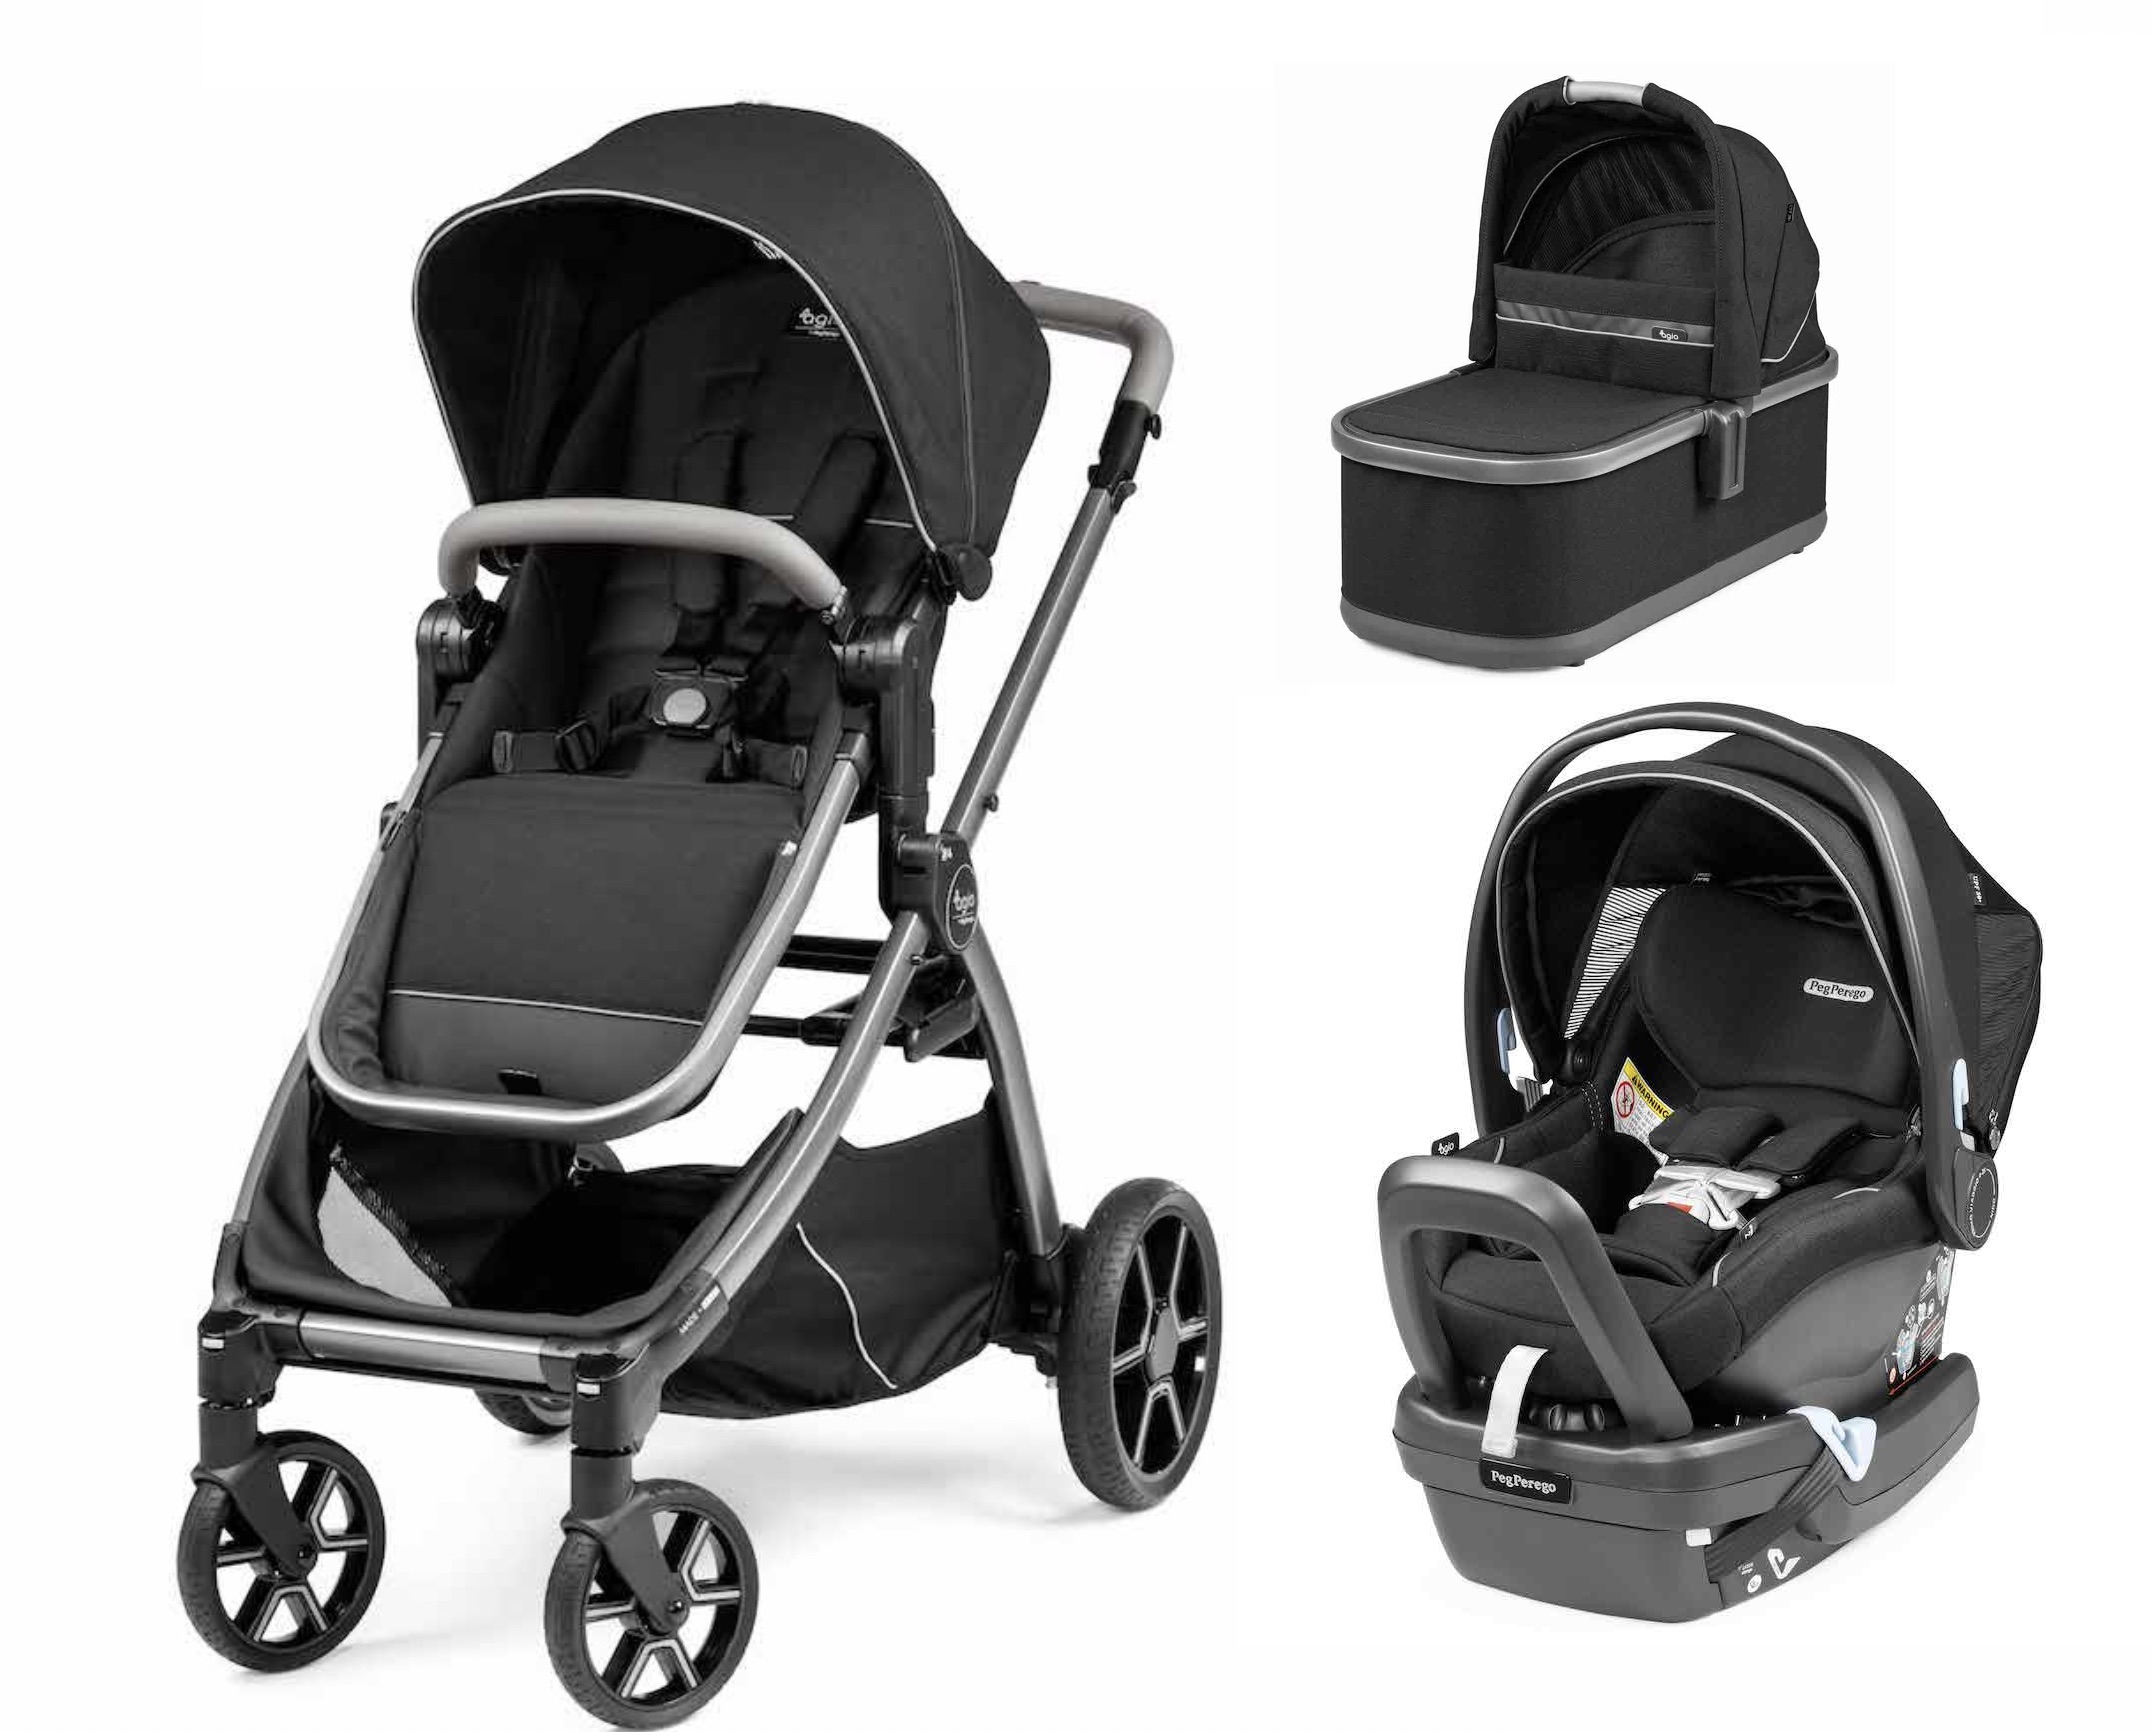 Agio Z4 Stroller and Bassinet Travel System - Black Pearl